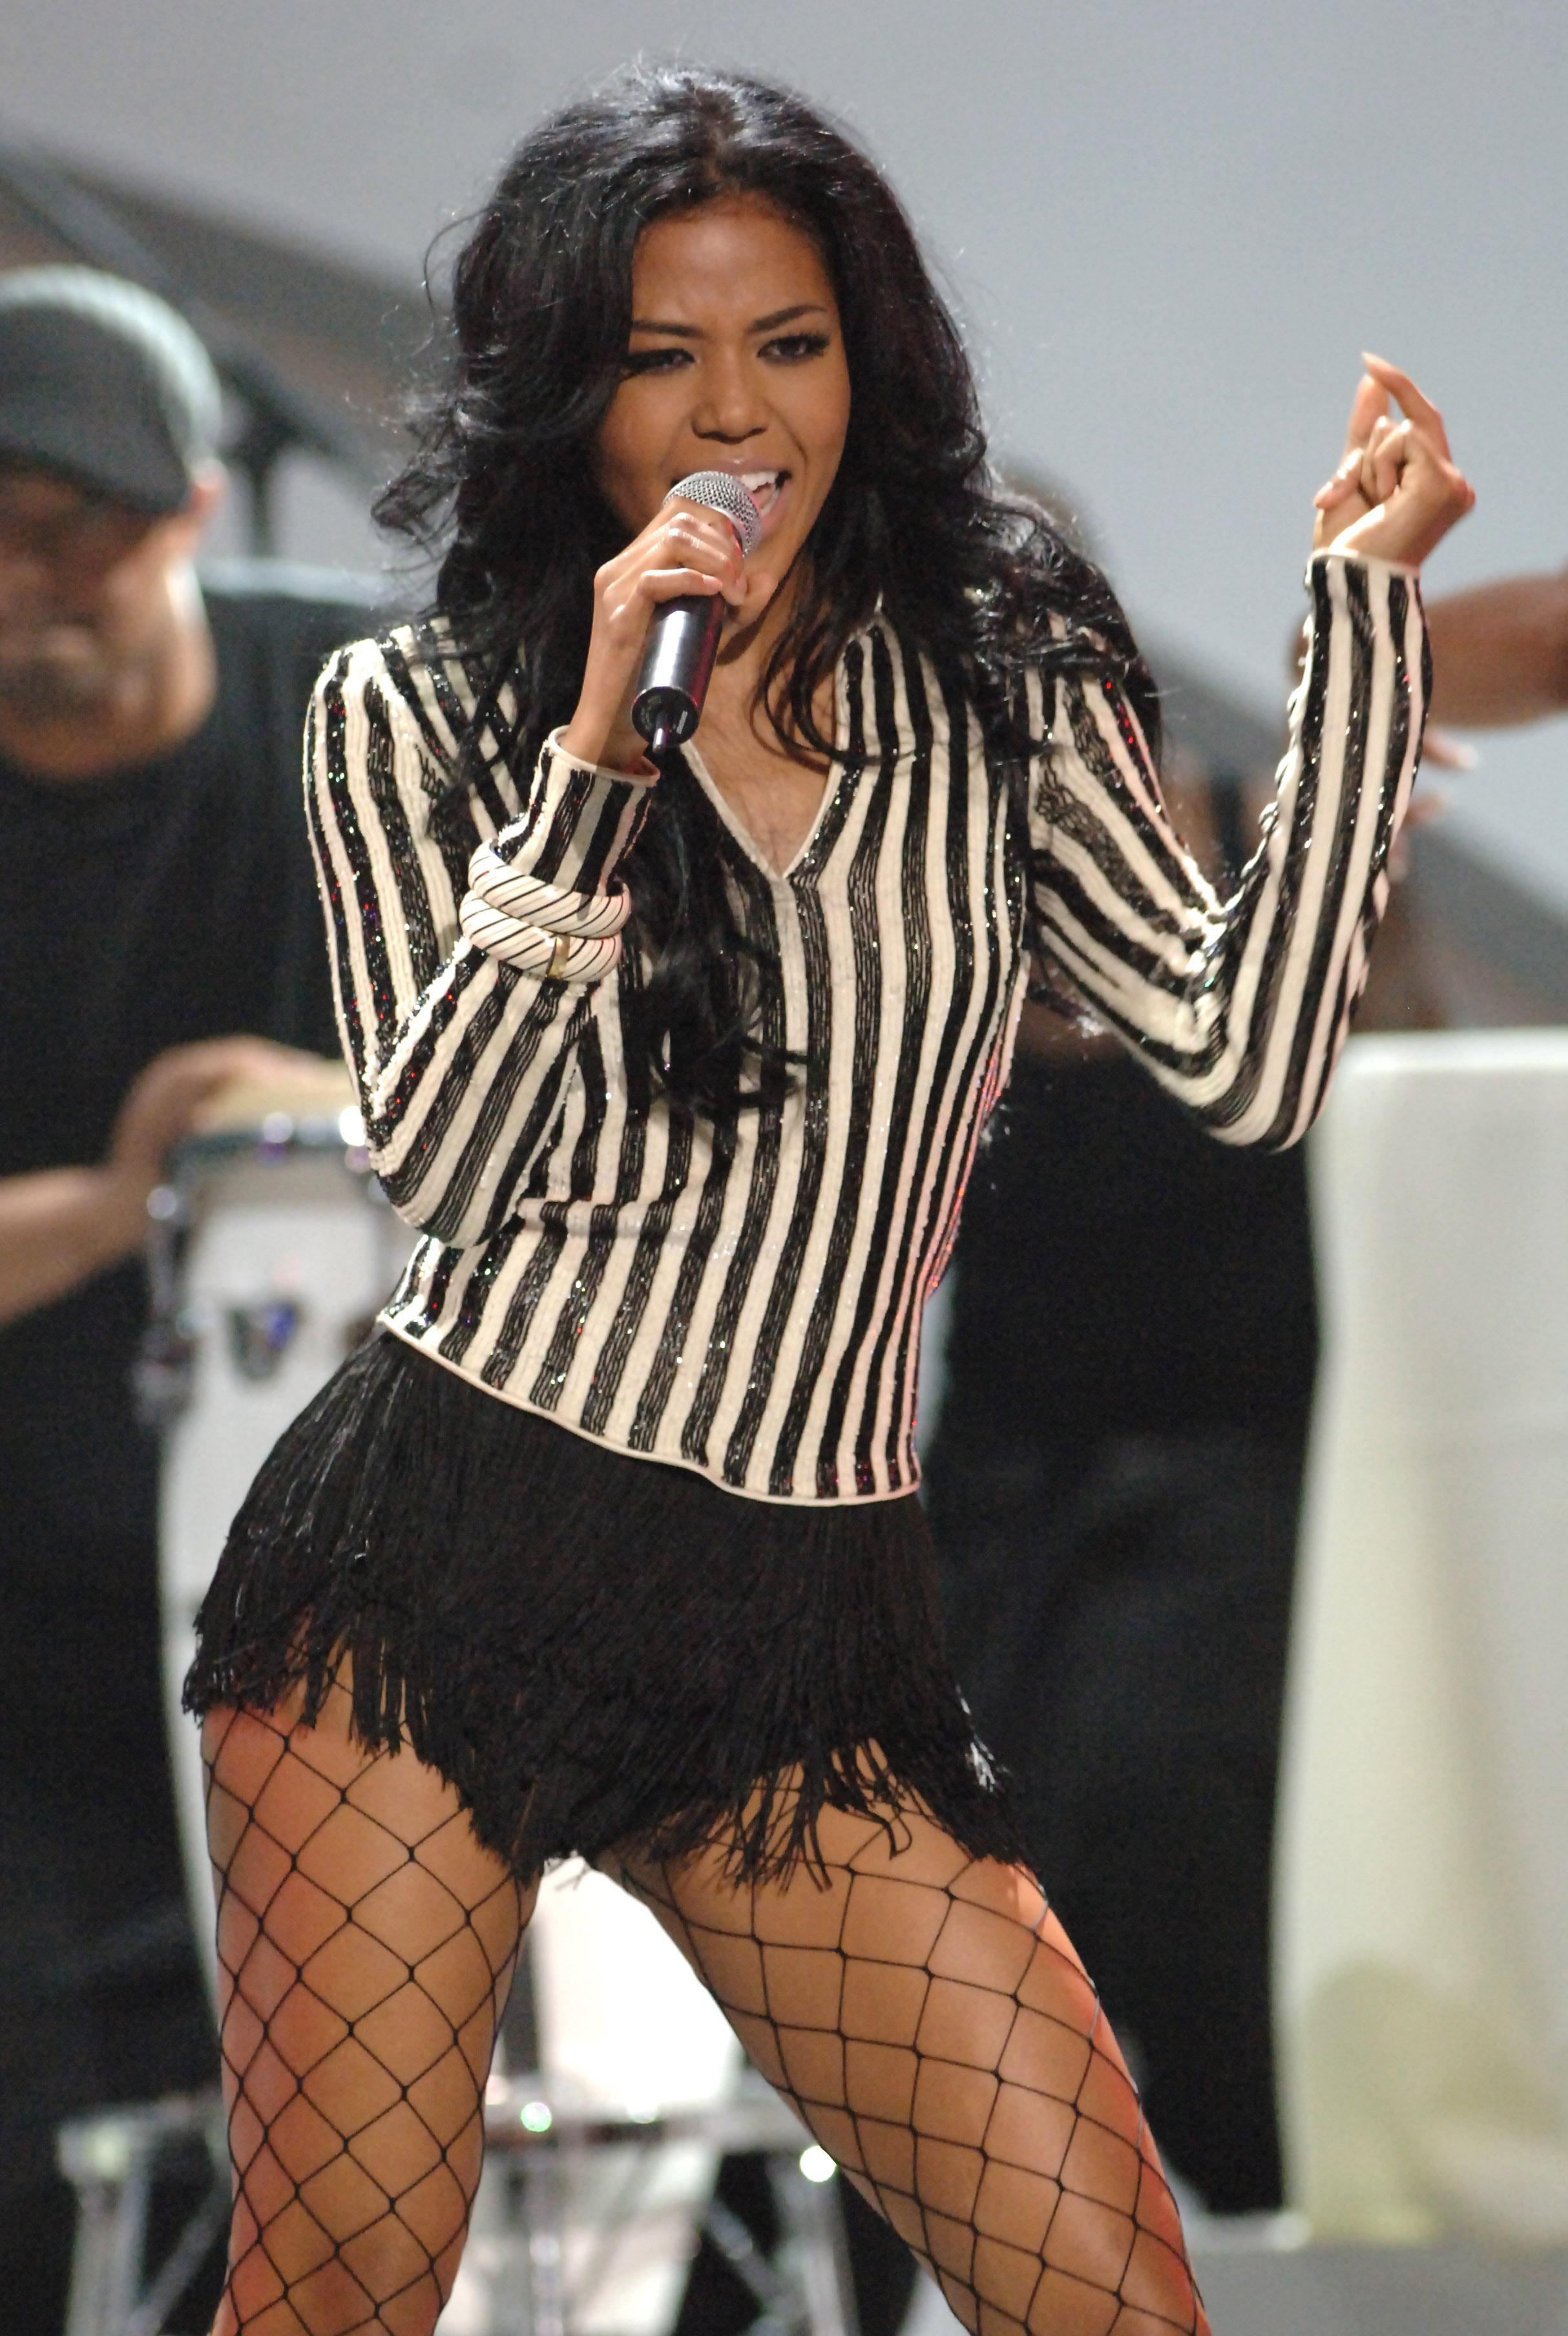 Amerie began dating her manager lenny nicholson